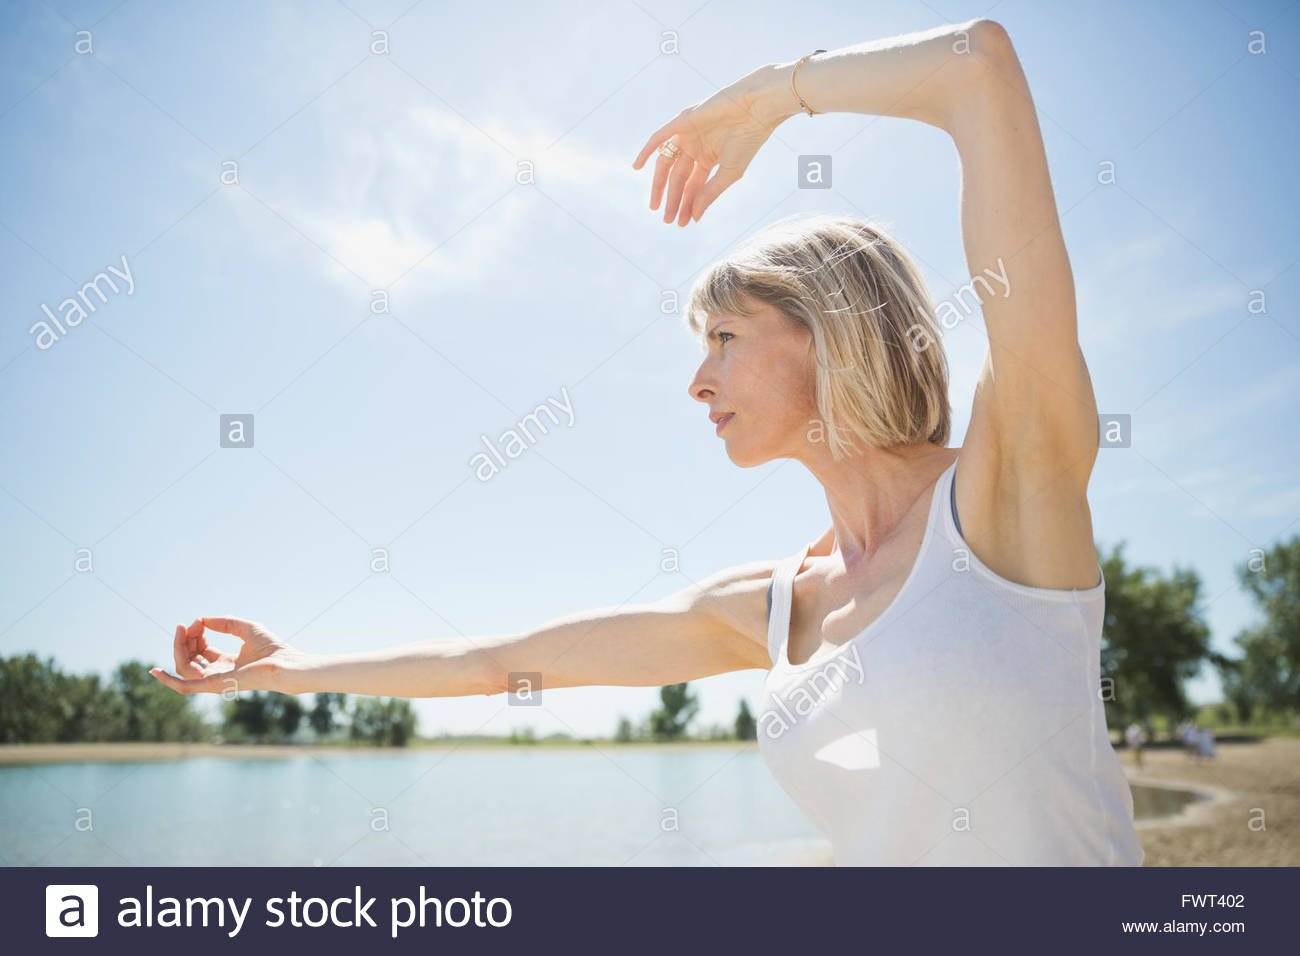 Middle-aged woman performing tai chi on beach - Stock Image